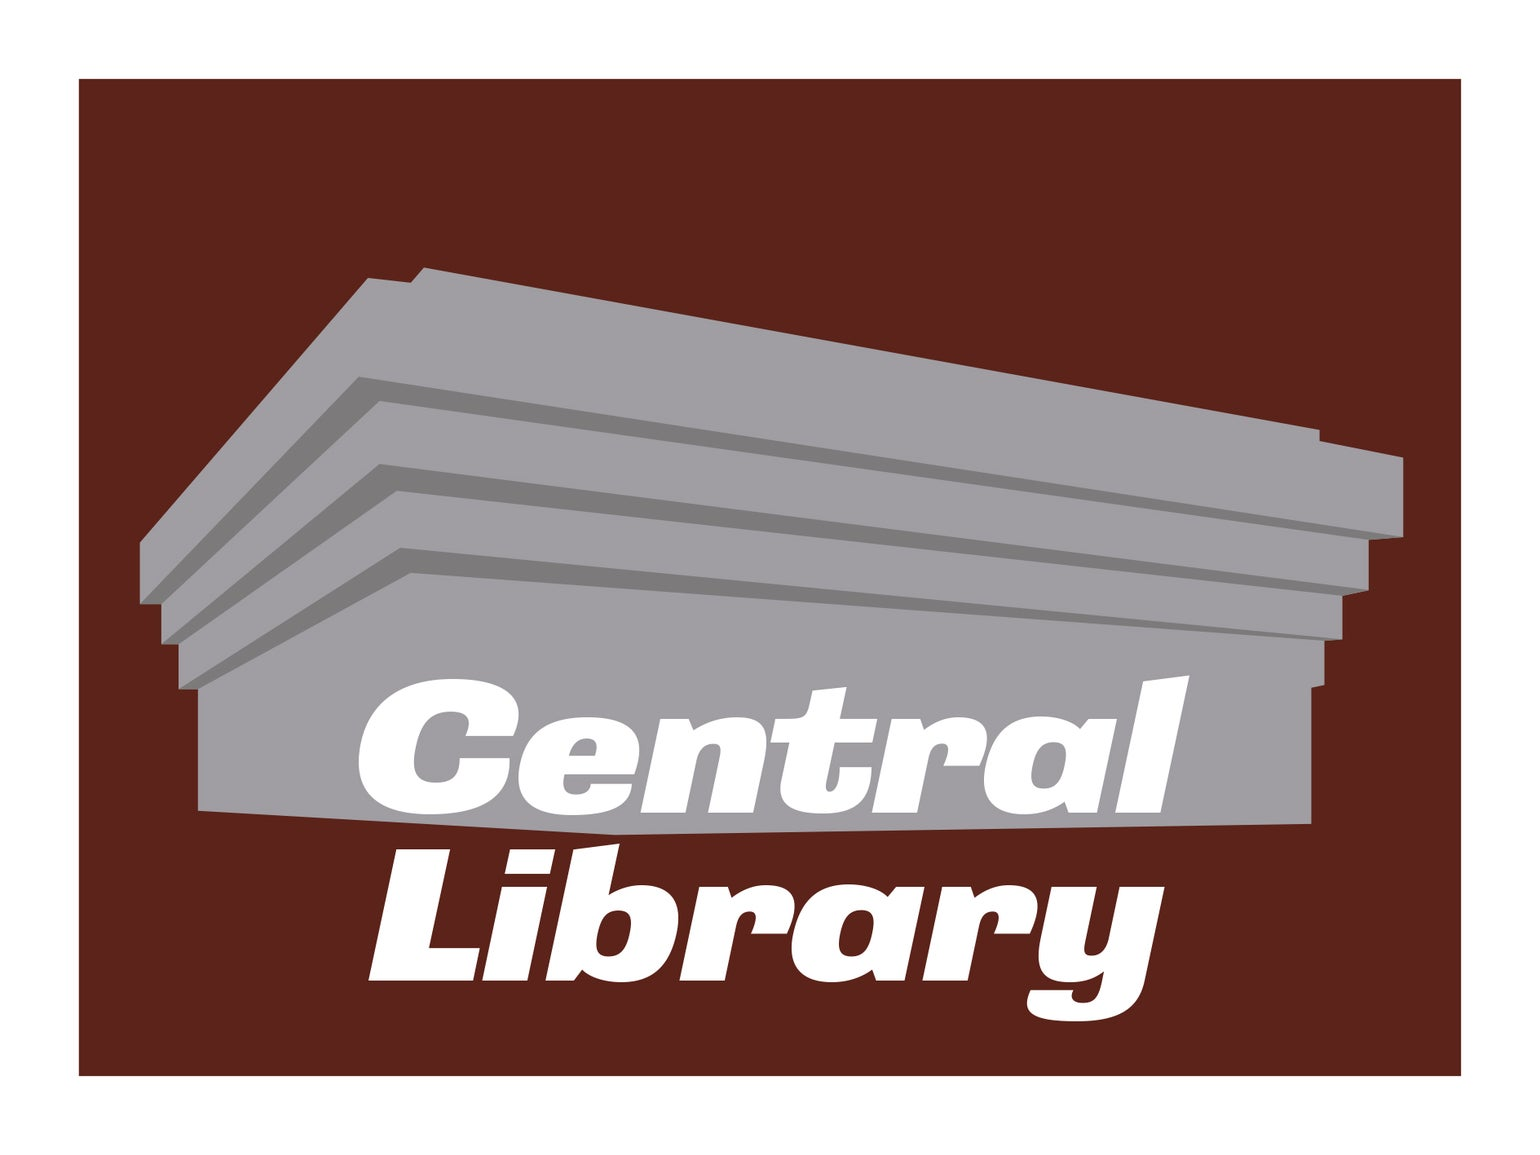 Image of Central Library